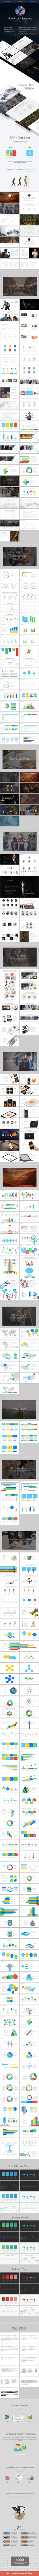 X Powerpoint Template #design #slides Download: http://graphicriver.net/item/x-powerpoint-template/13106154?ref=ksioks